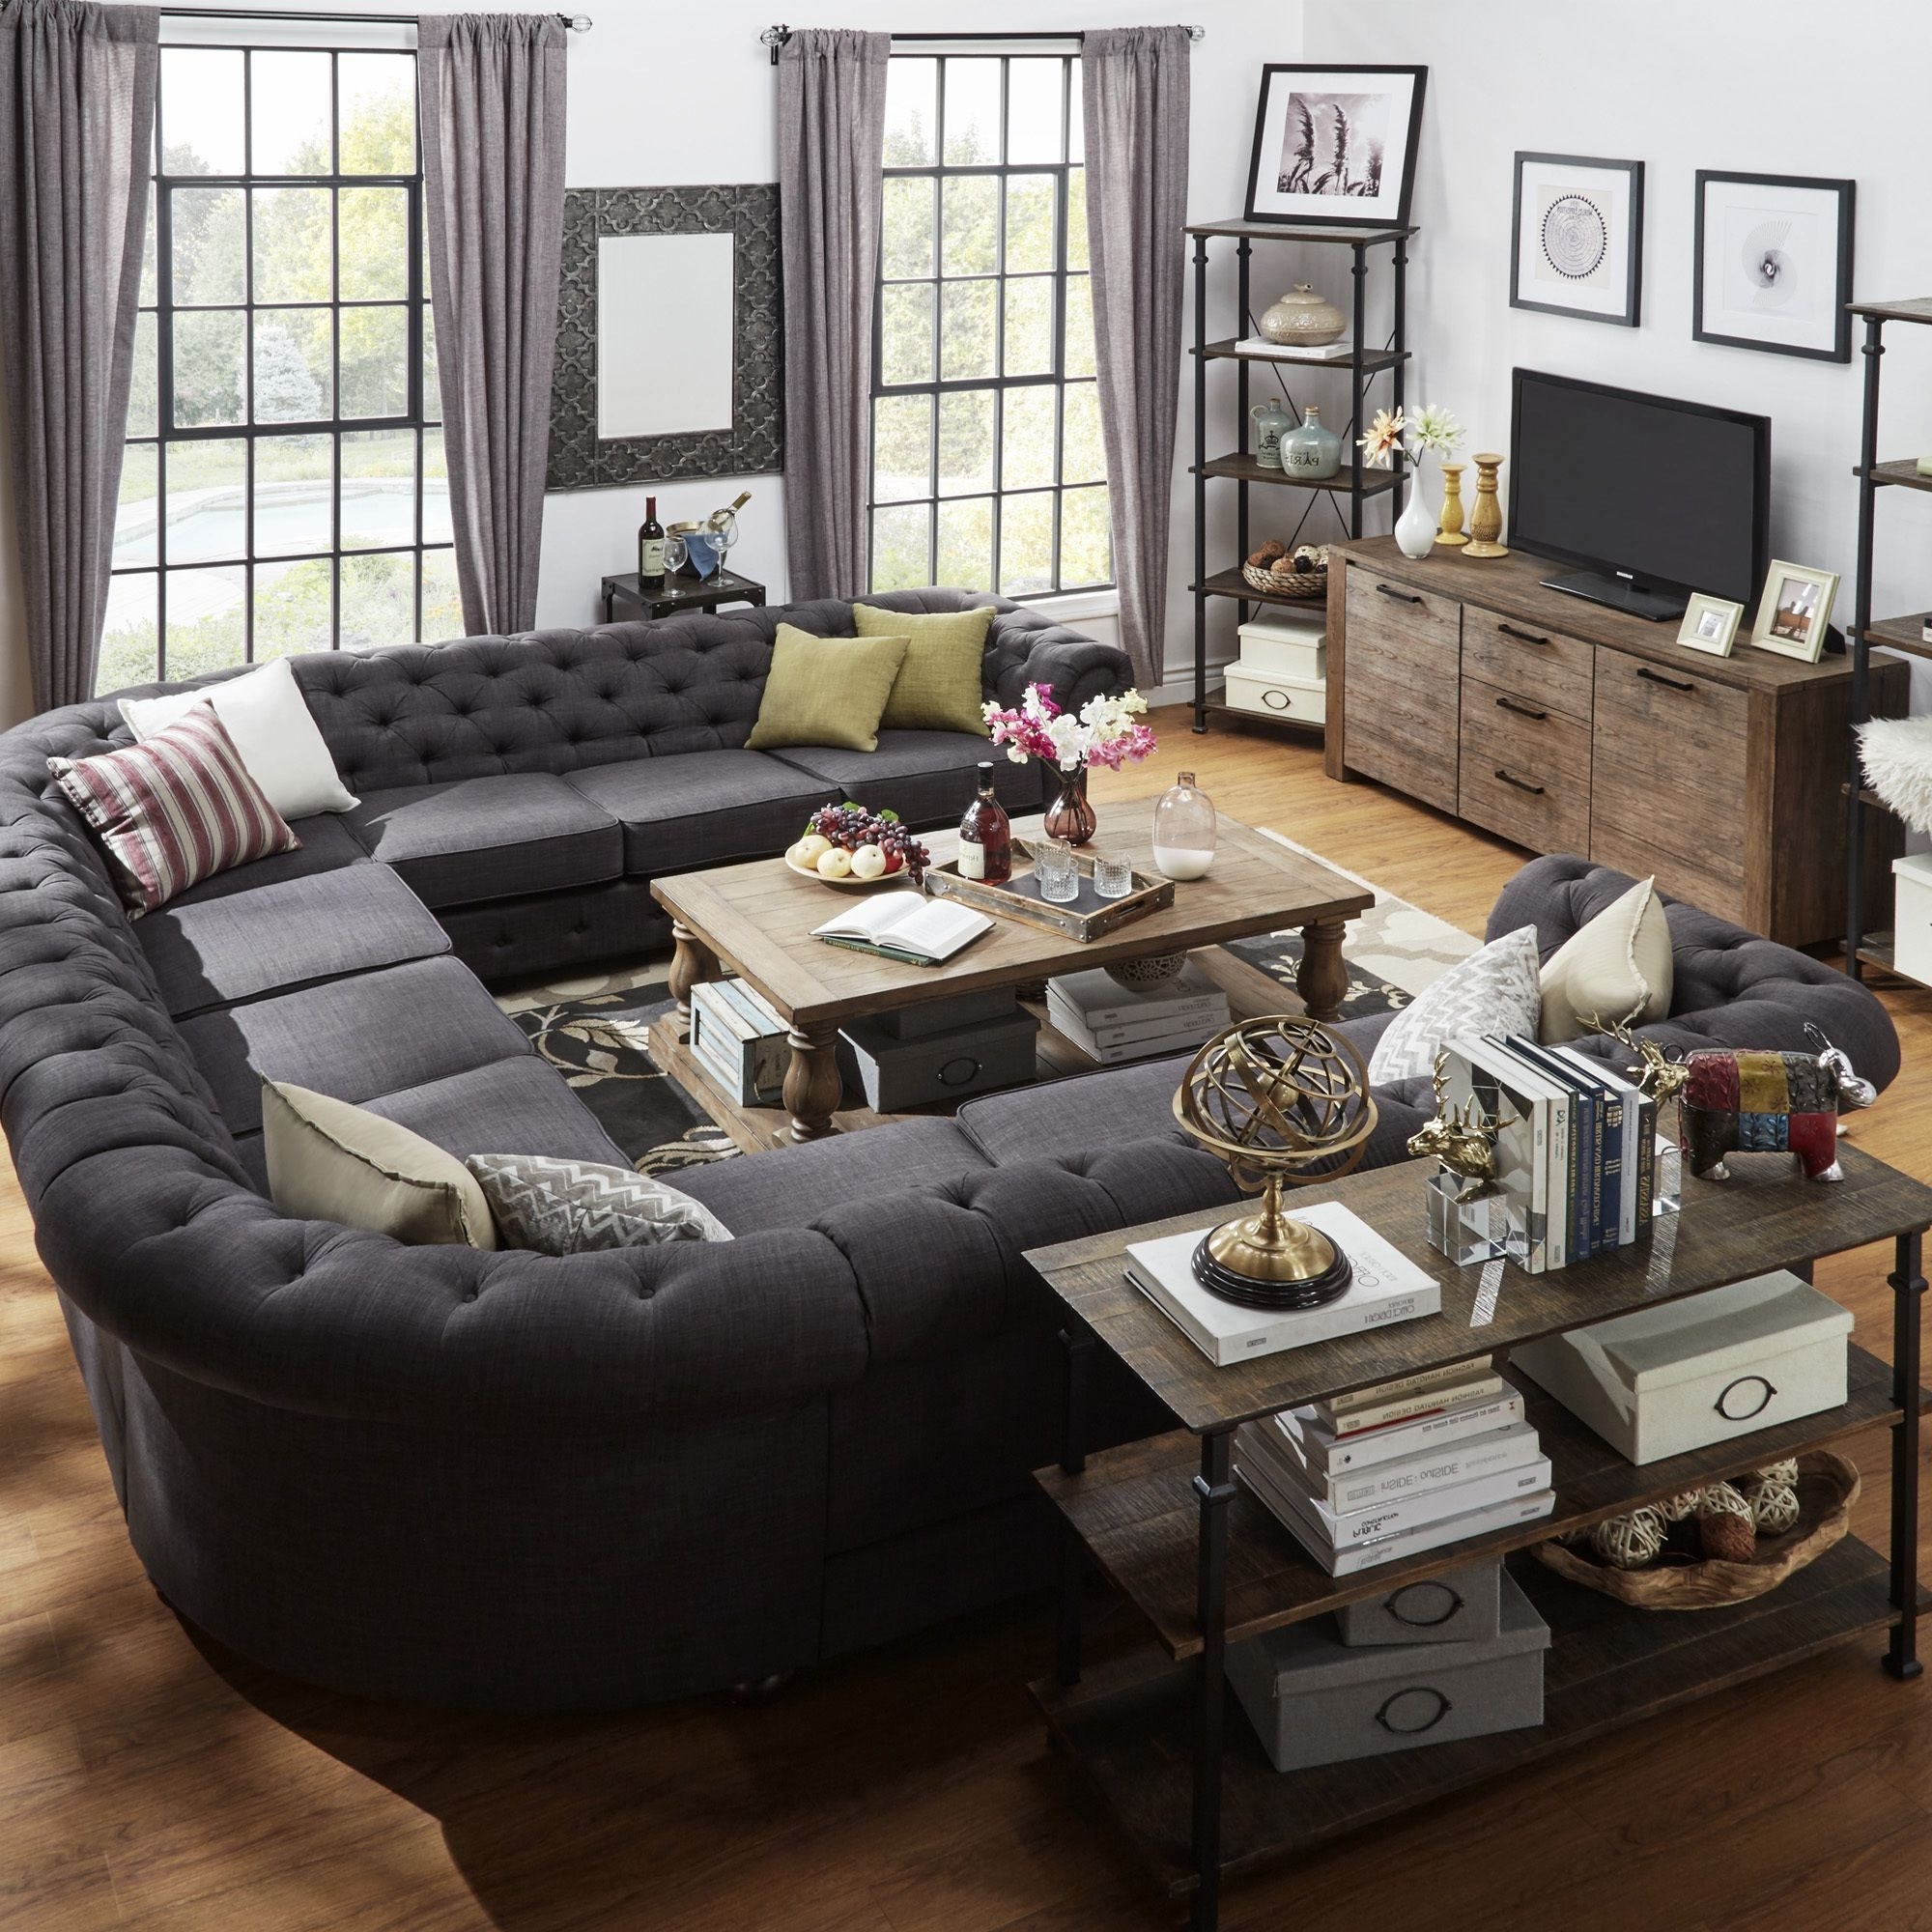 Widely Used Big U Shaped Sectionals In Signal Hills Knightsbridge Tufted Scroll Arm Chesterfield 11 Seat (View 5 of 15)